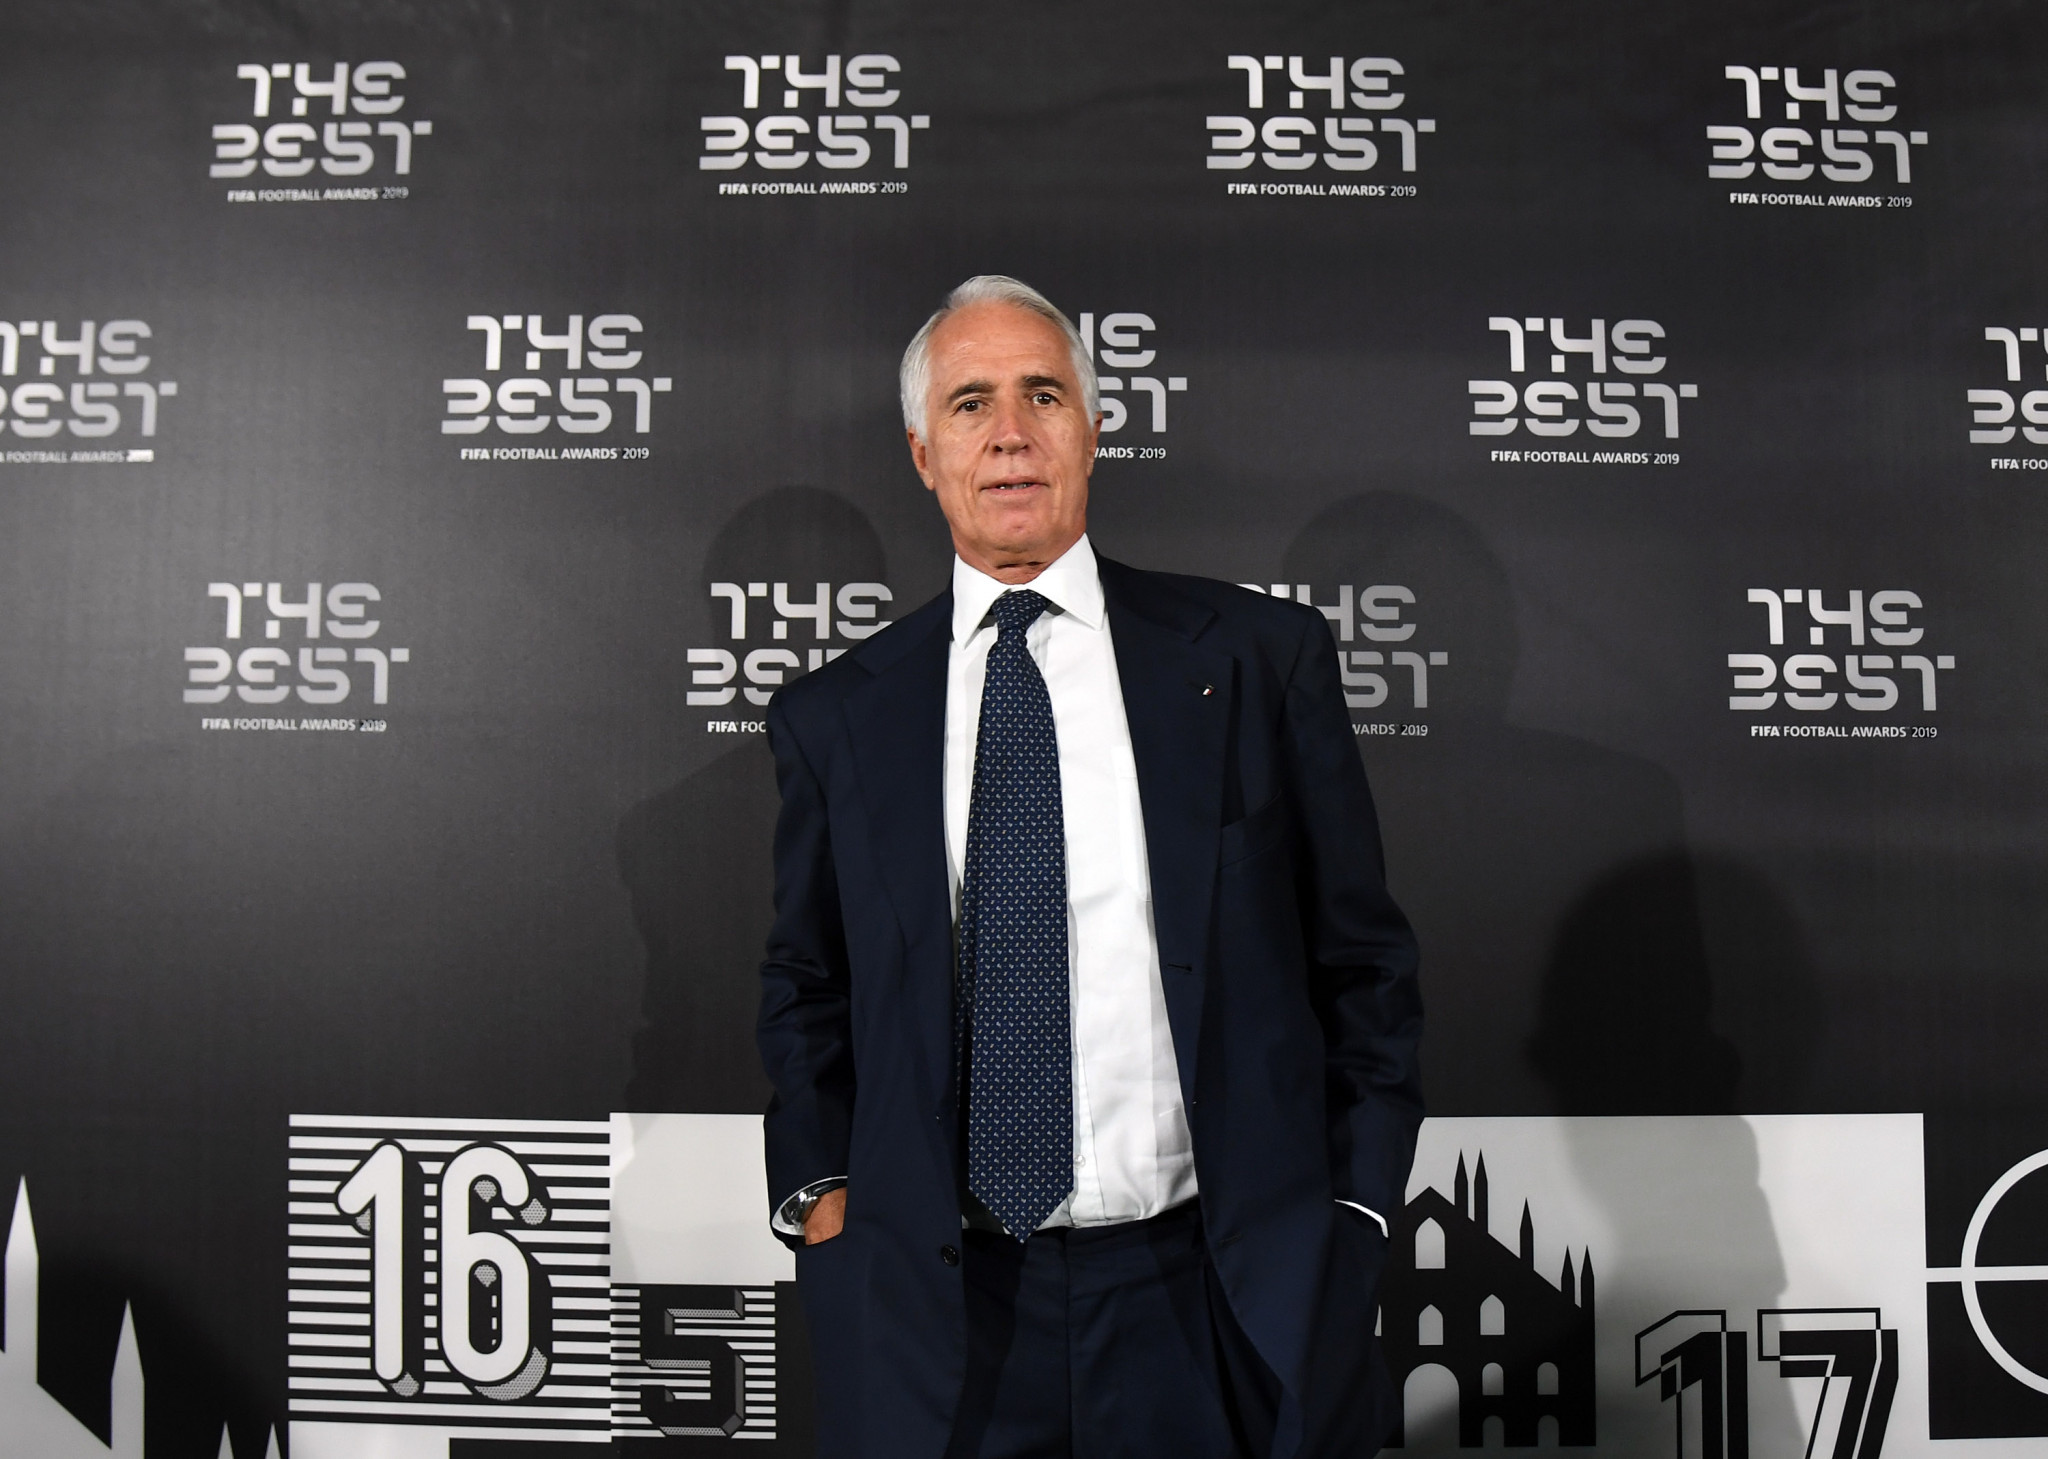 Italian IOC member Malagò claims diving in football worse than racism